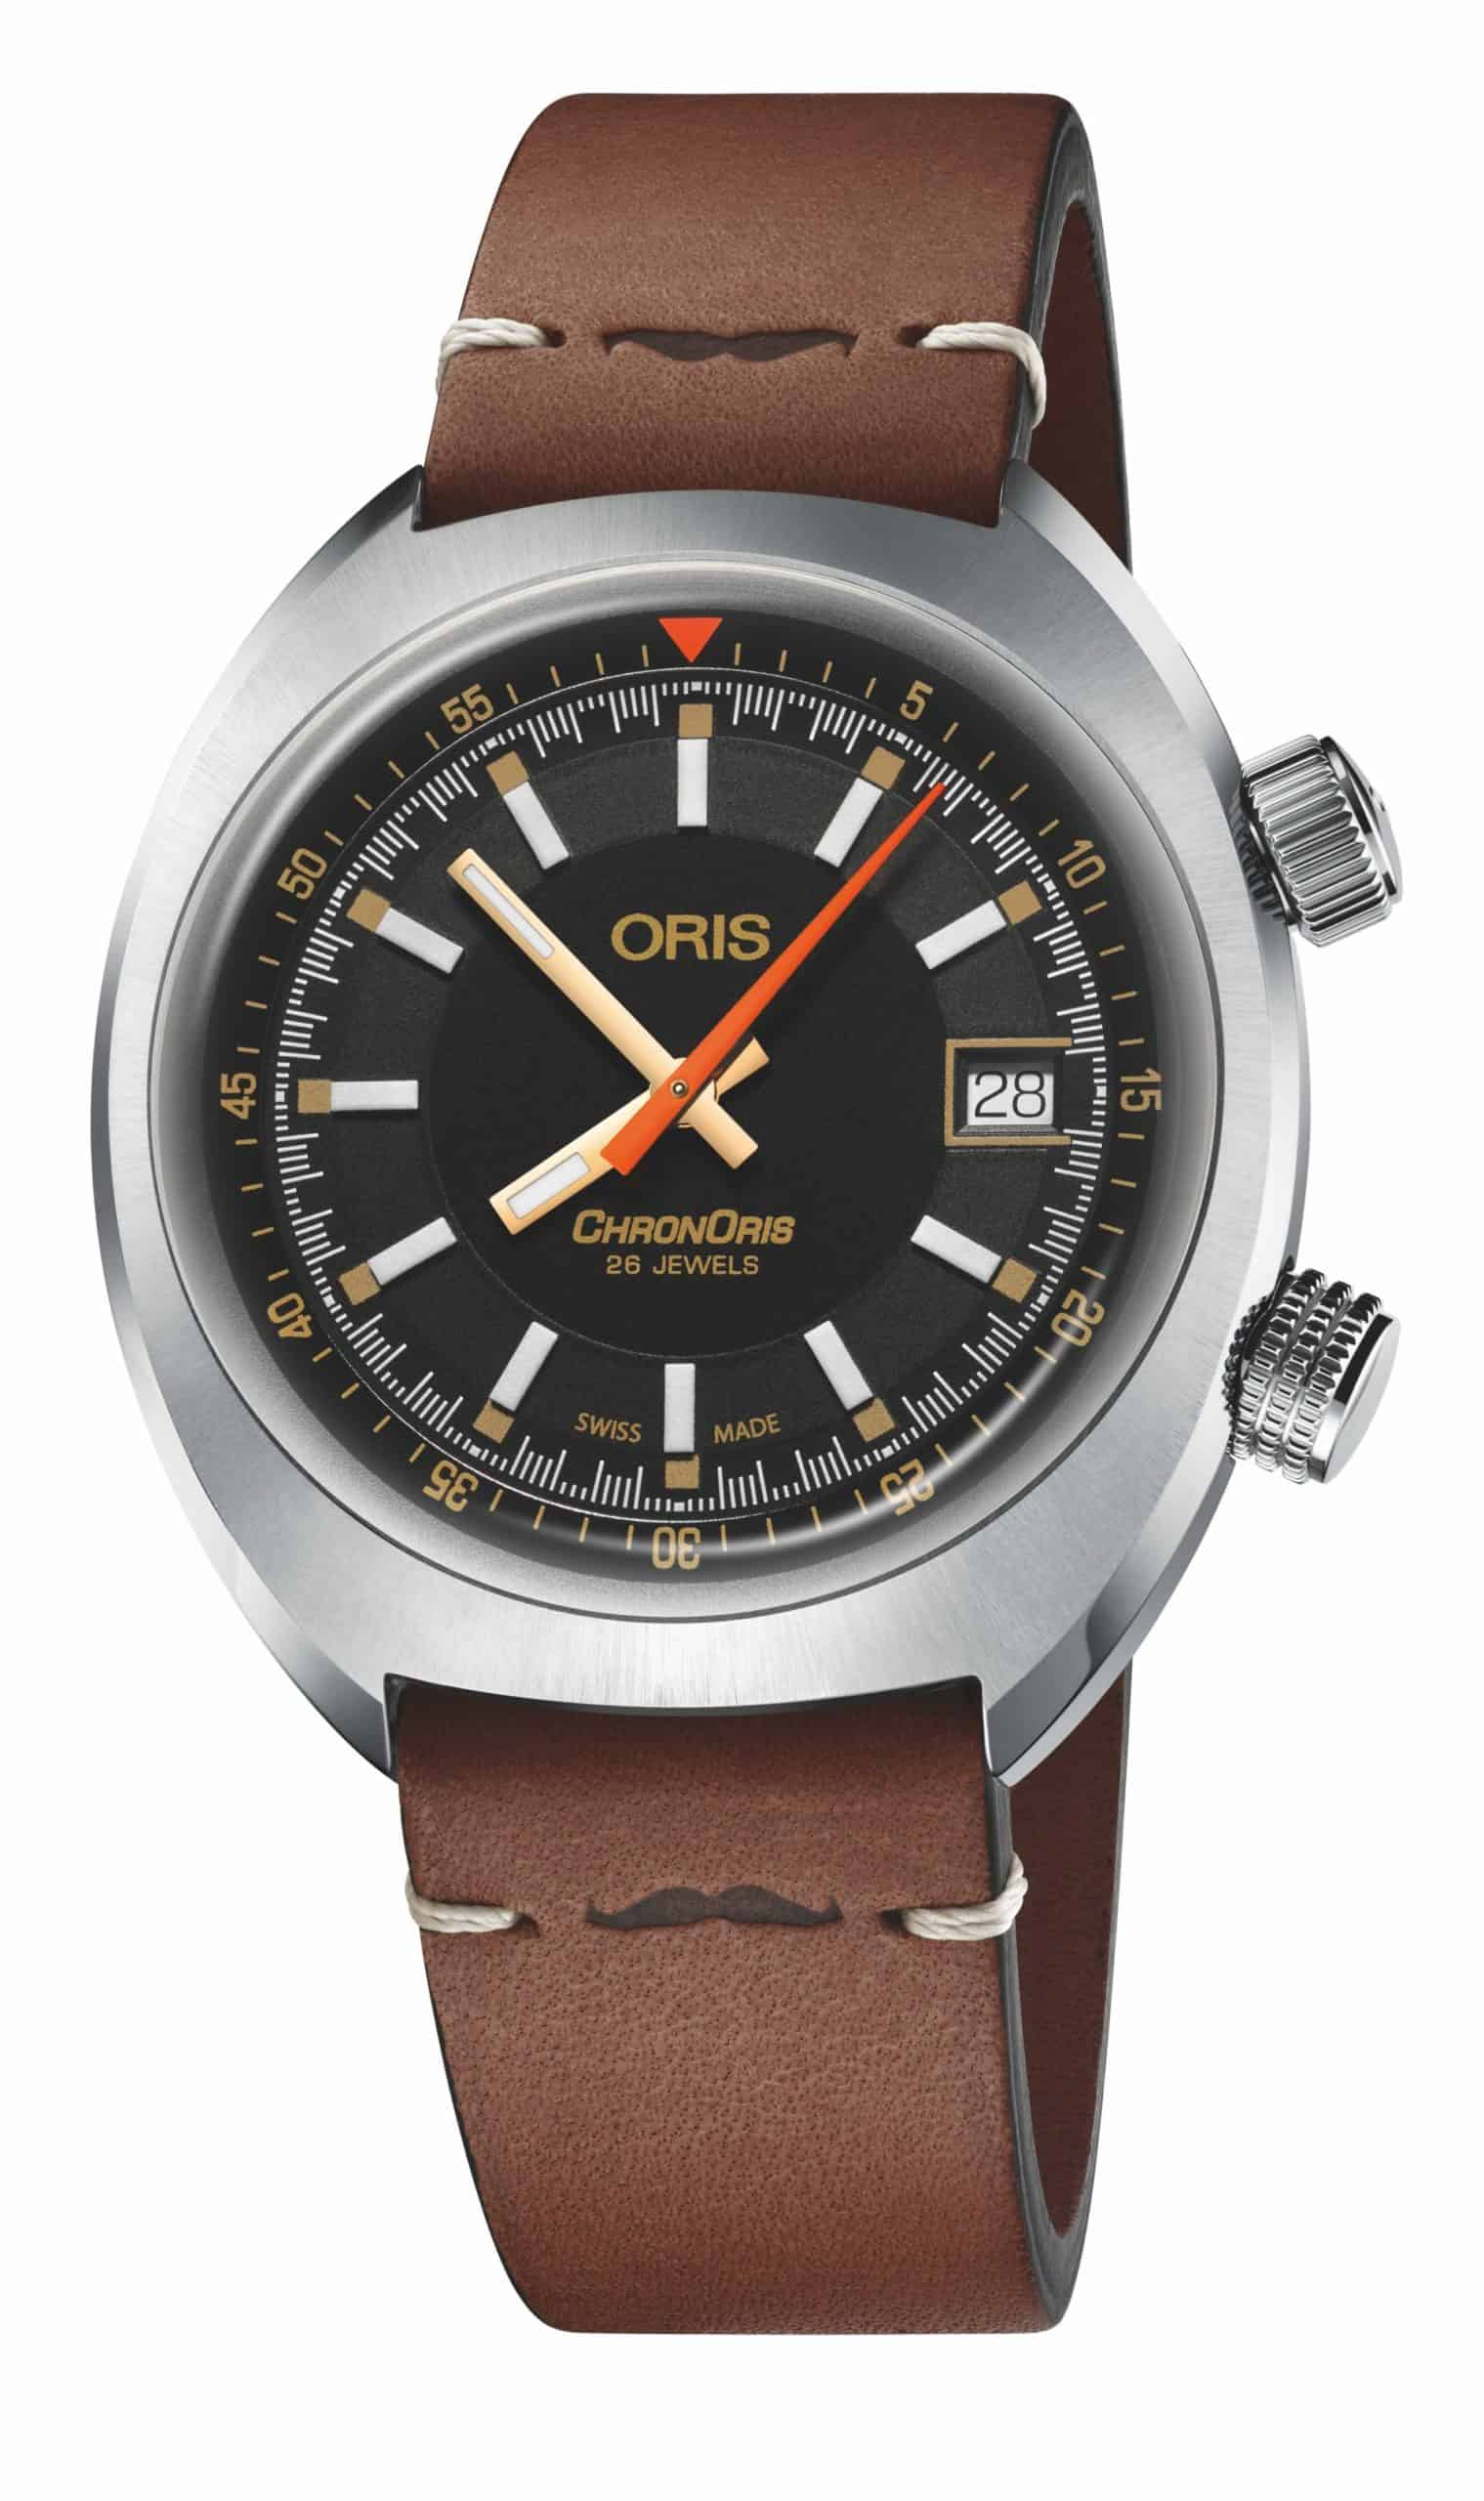 Oris Chronoris Movember Edition 2019 01 733 7737 4034 Lederband scaled